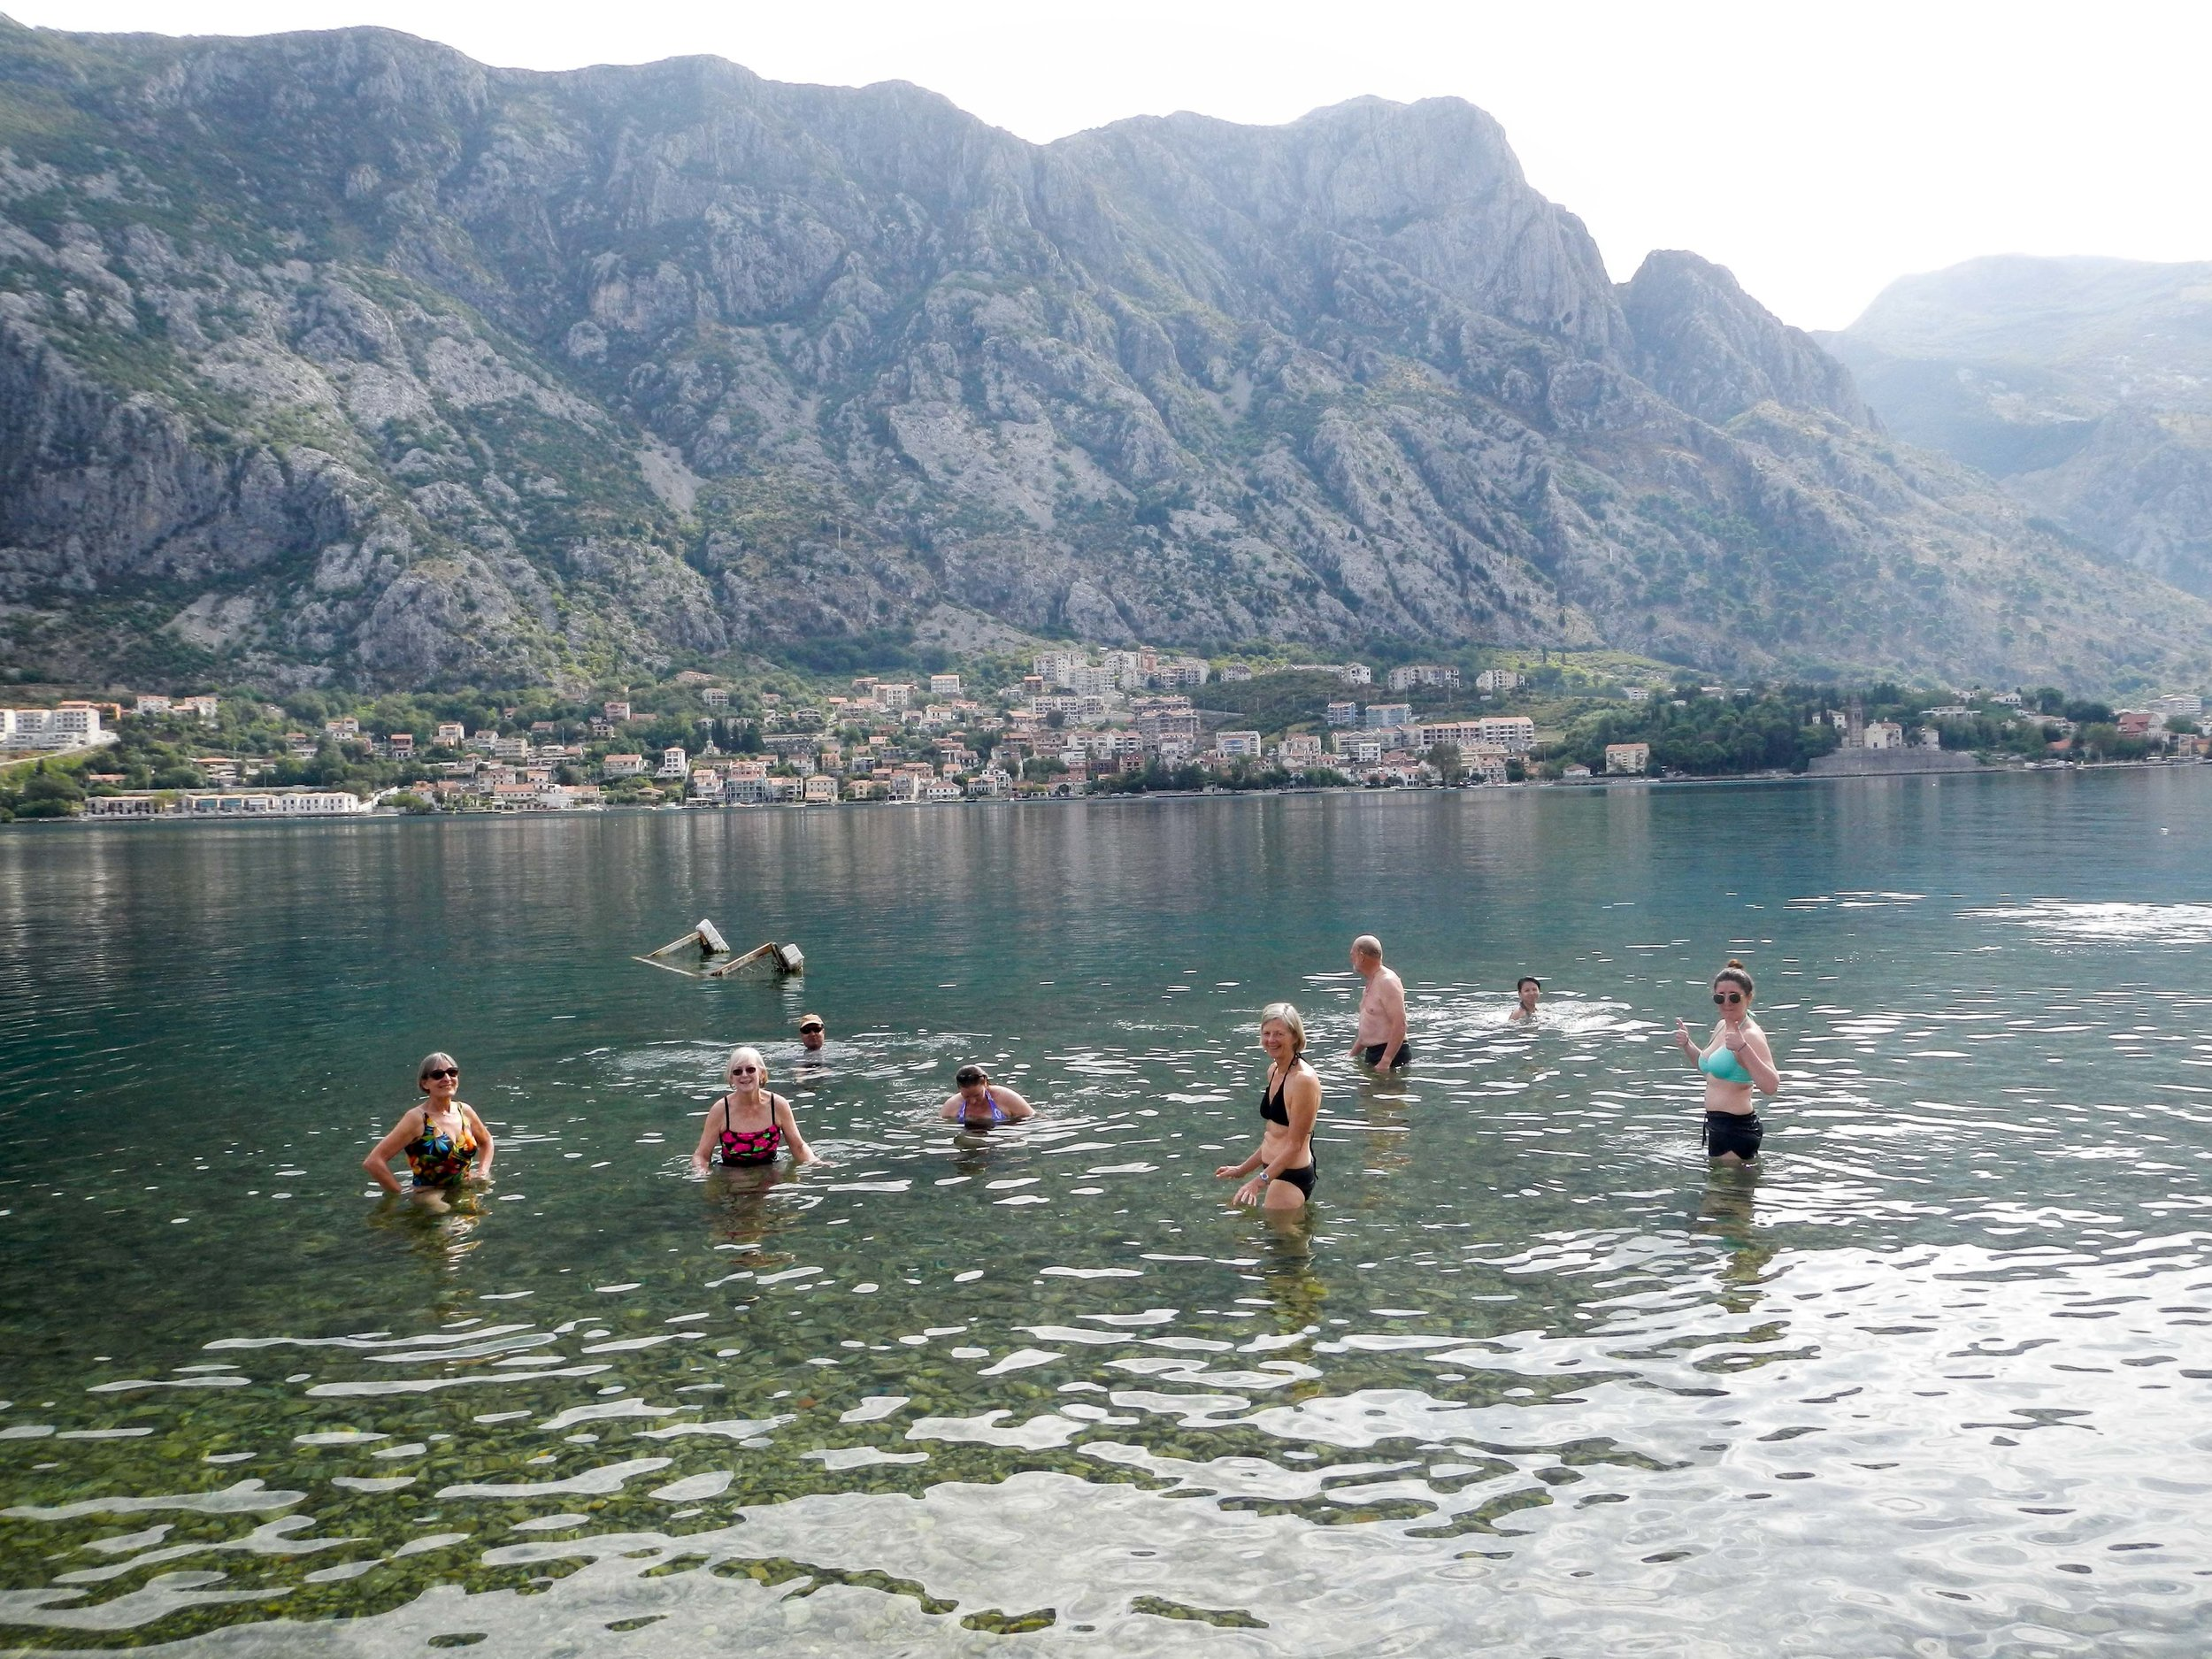 Group swimming, Kotor, Montenegro